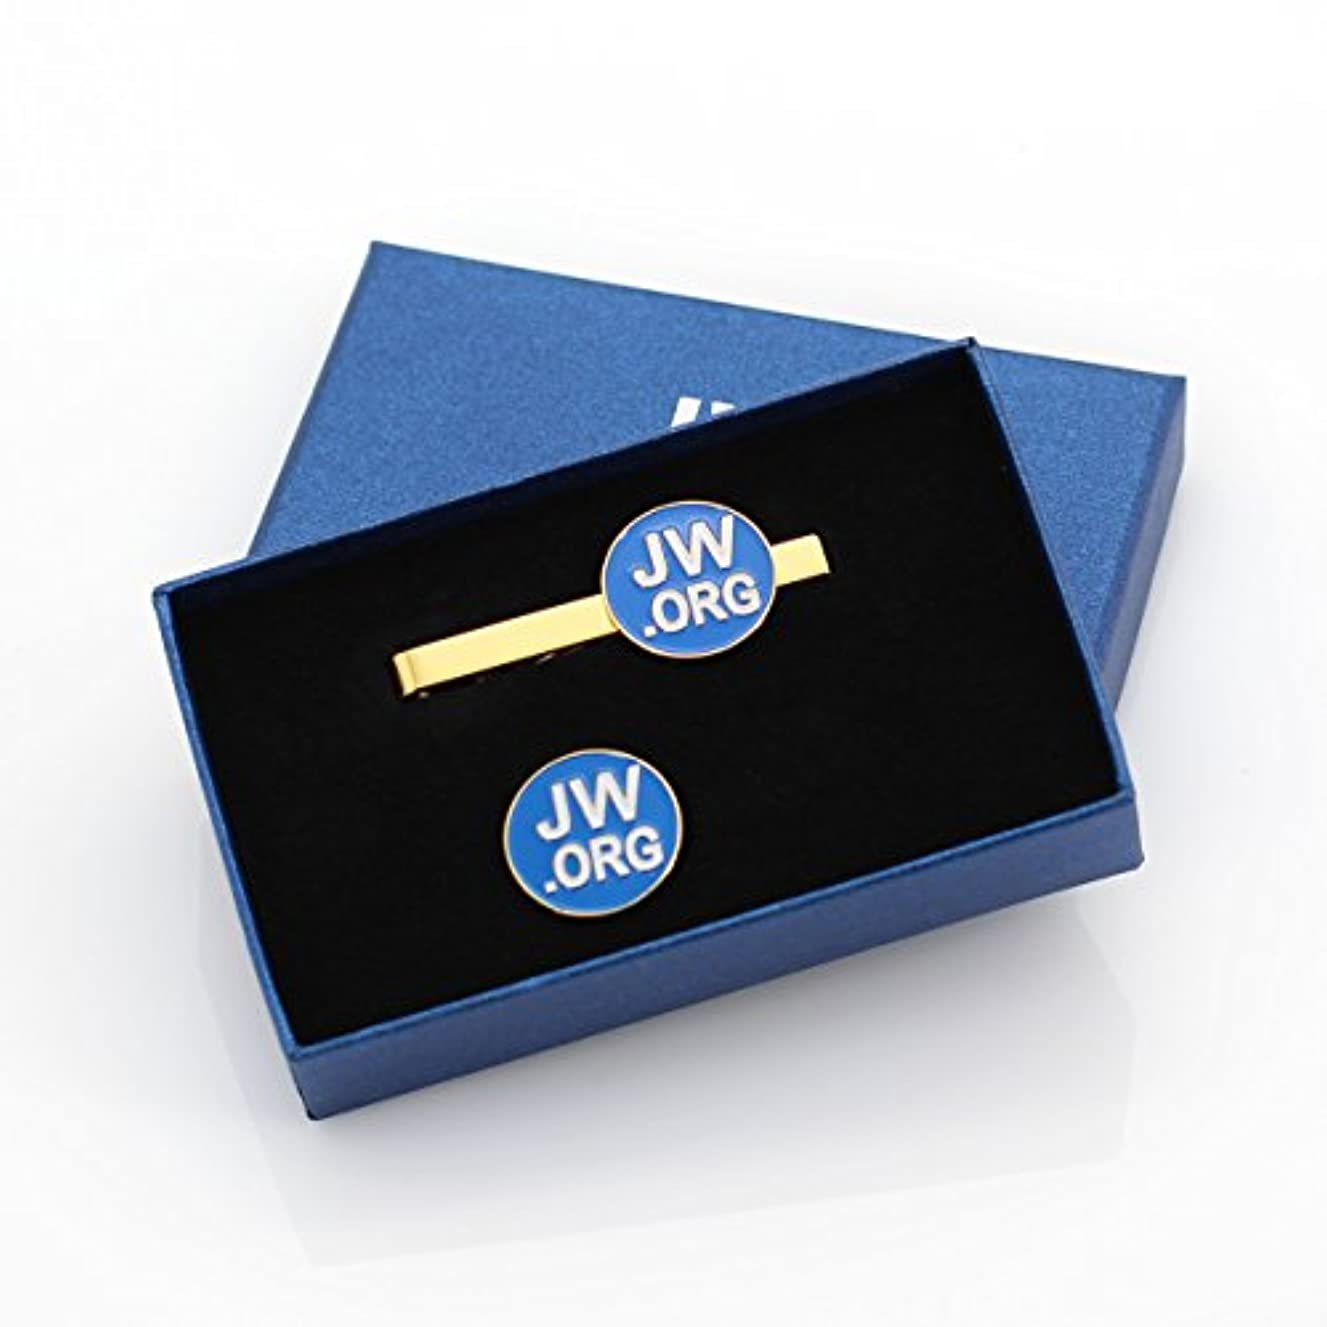 Round Jw.org Metal Necktie Clip and Lapel Pin Set with Gift Box -Blue Background-Gold Color